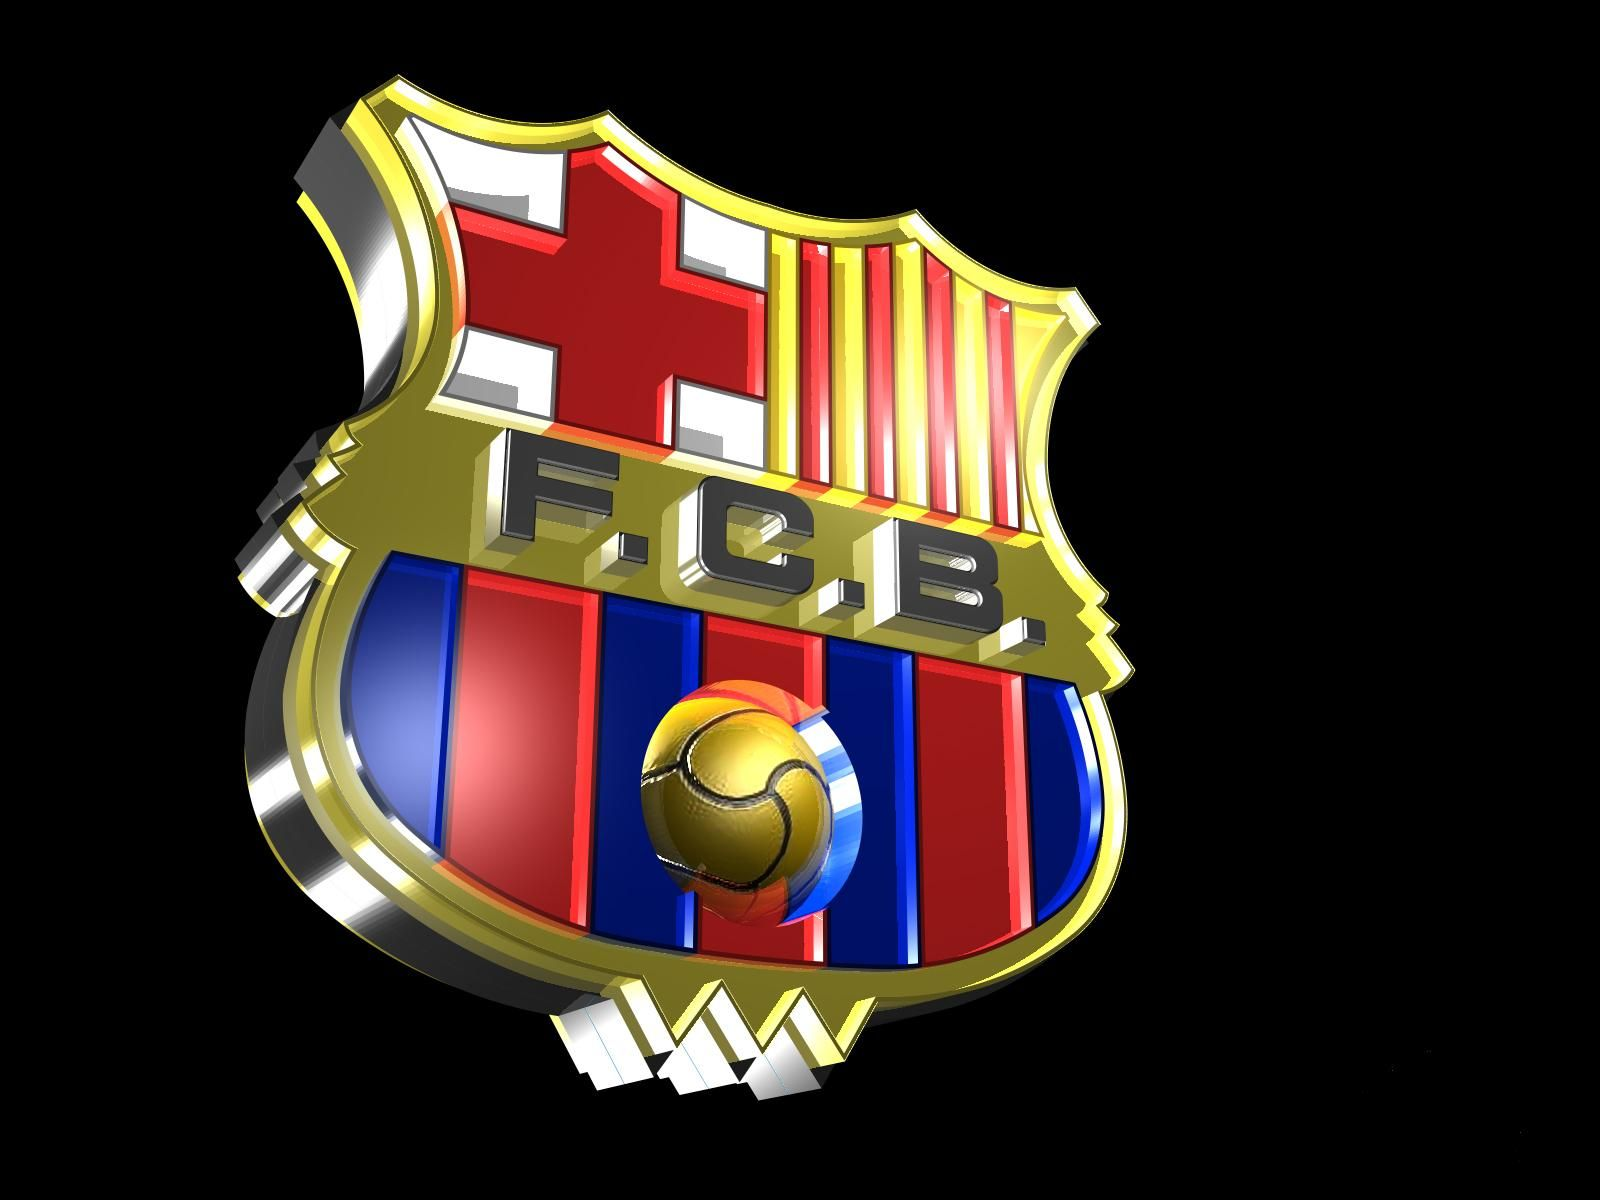 Fondos De Pantalla Del Fútbol Club Barcelona Wallpapers: Pin By Wall_lucky On Wallpapers And Backgrounds HD